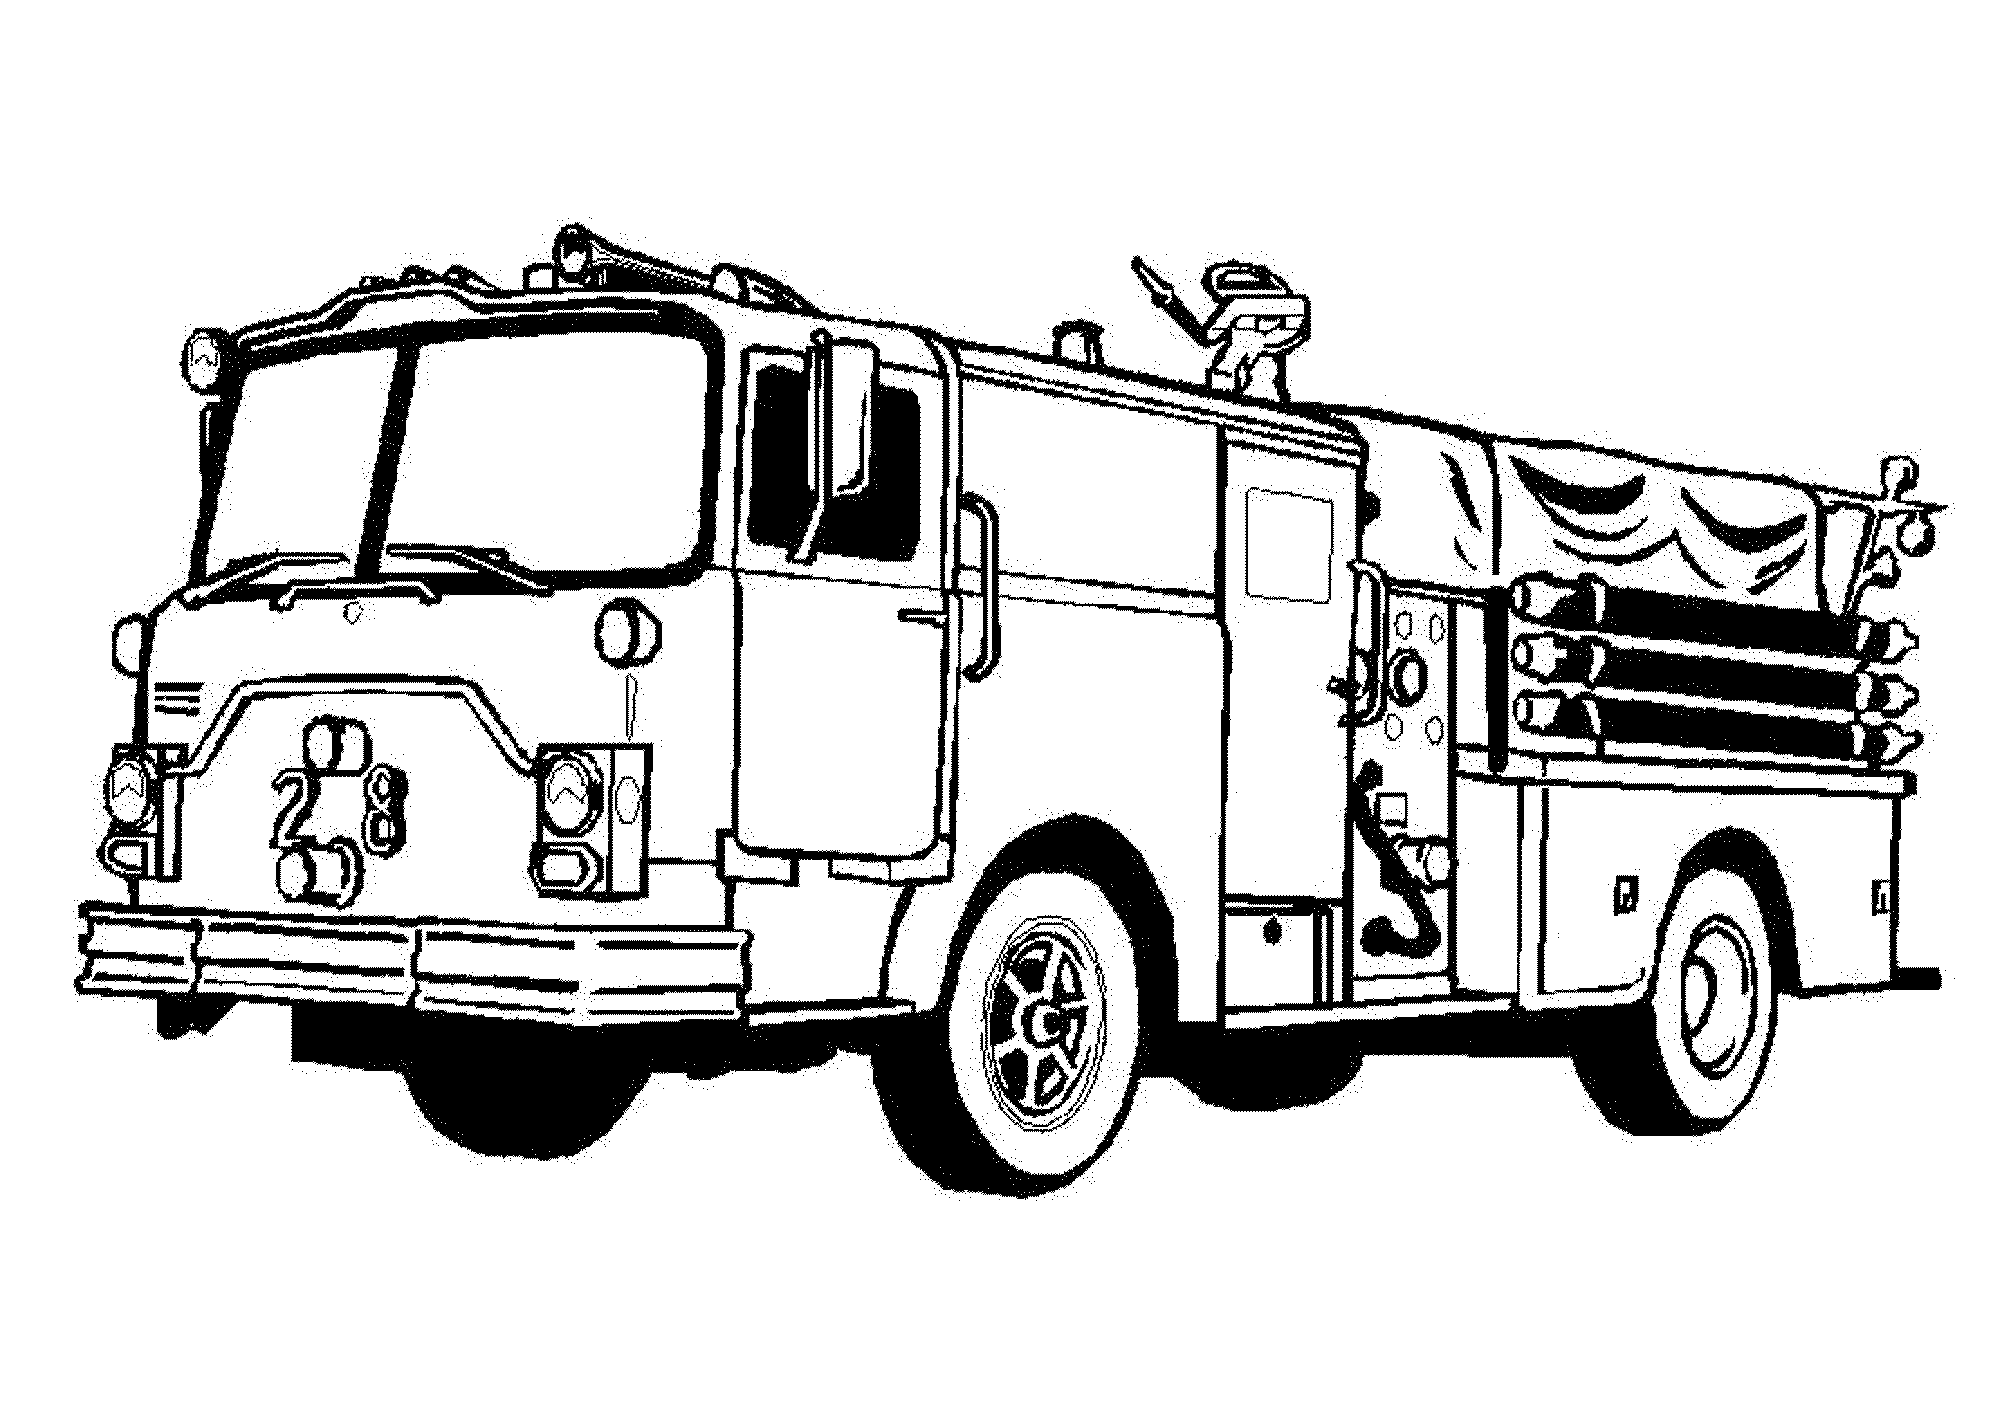 Drawn truck coloring page Fire pages for Pages truck